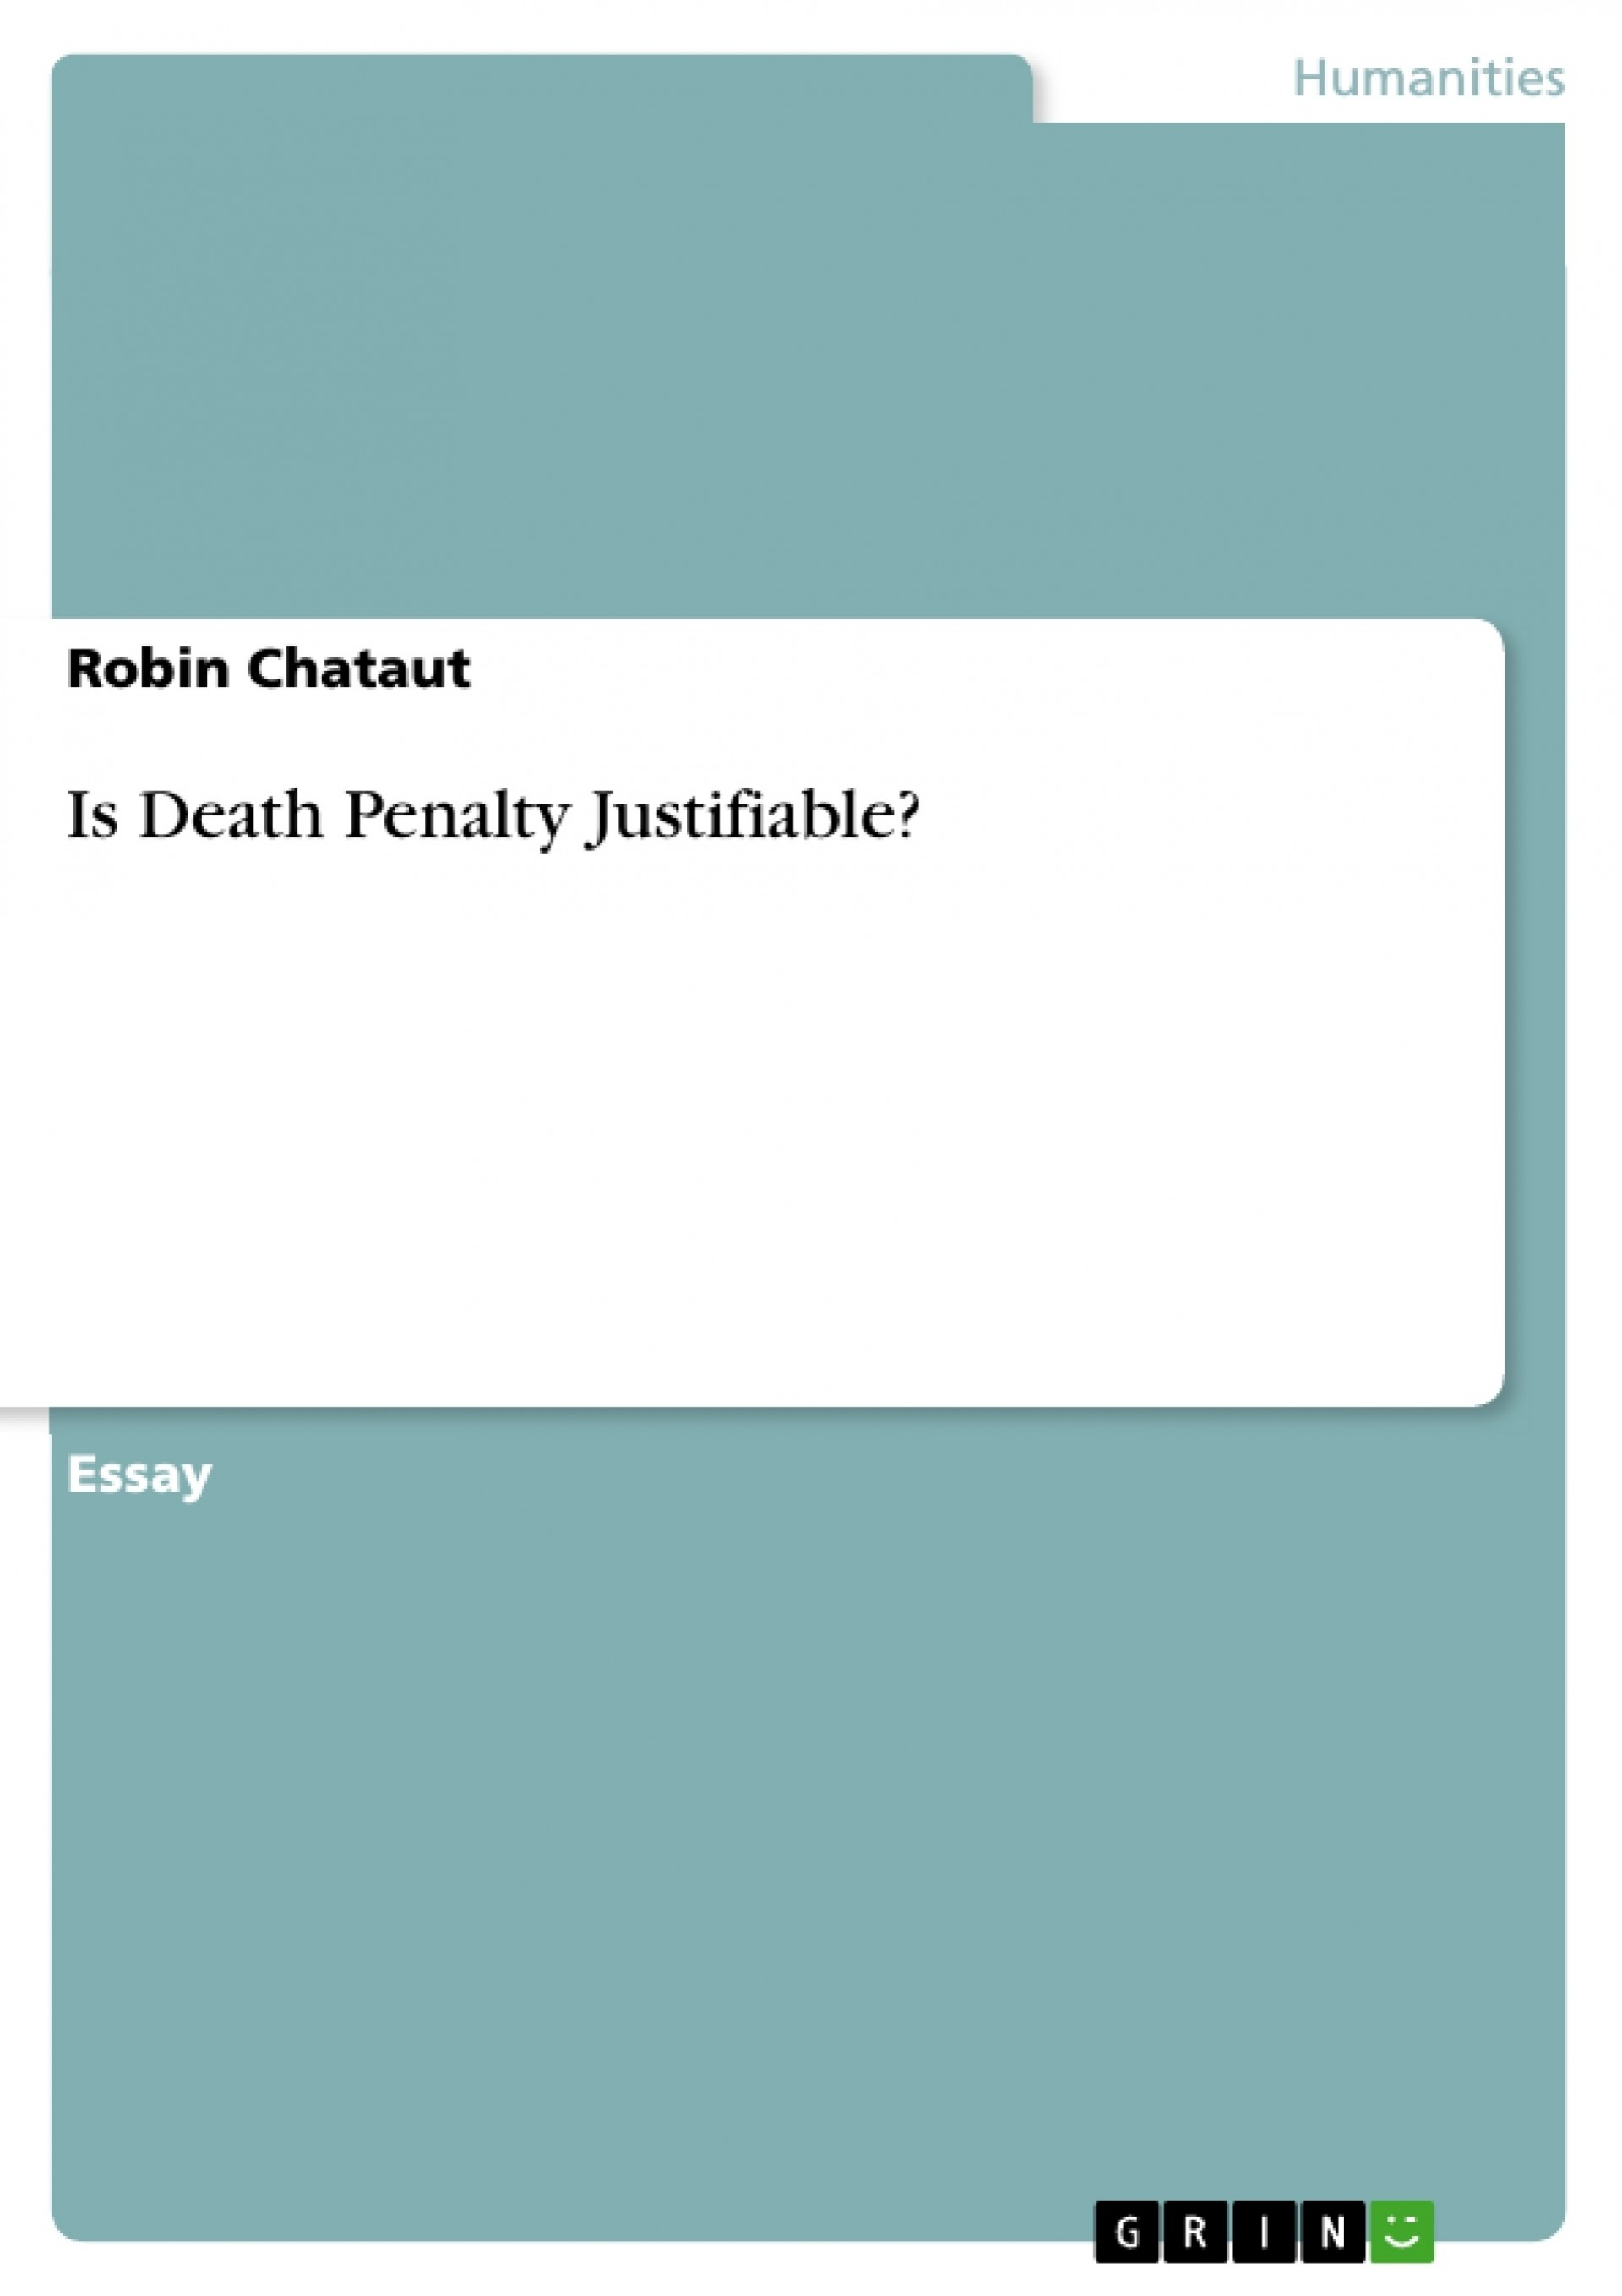 016 295417 0 Essay Example Against Death Unique Penalty Anti Tagalog Conclusion Examples 1920